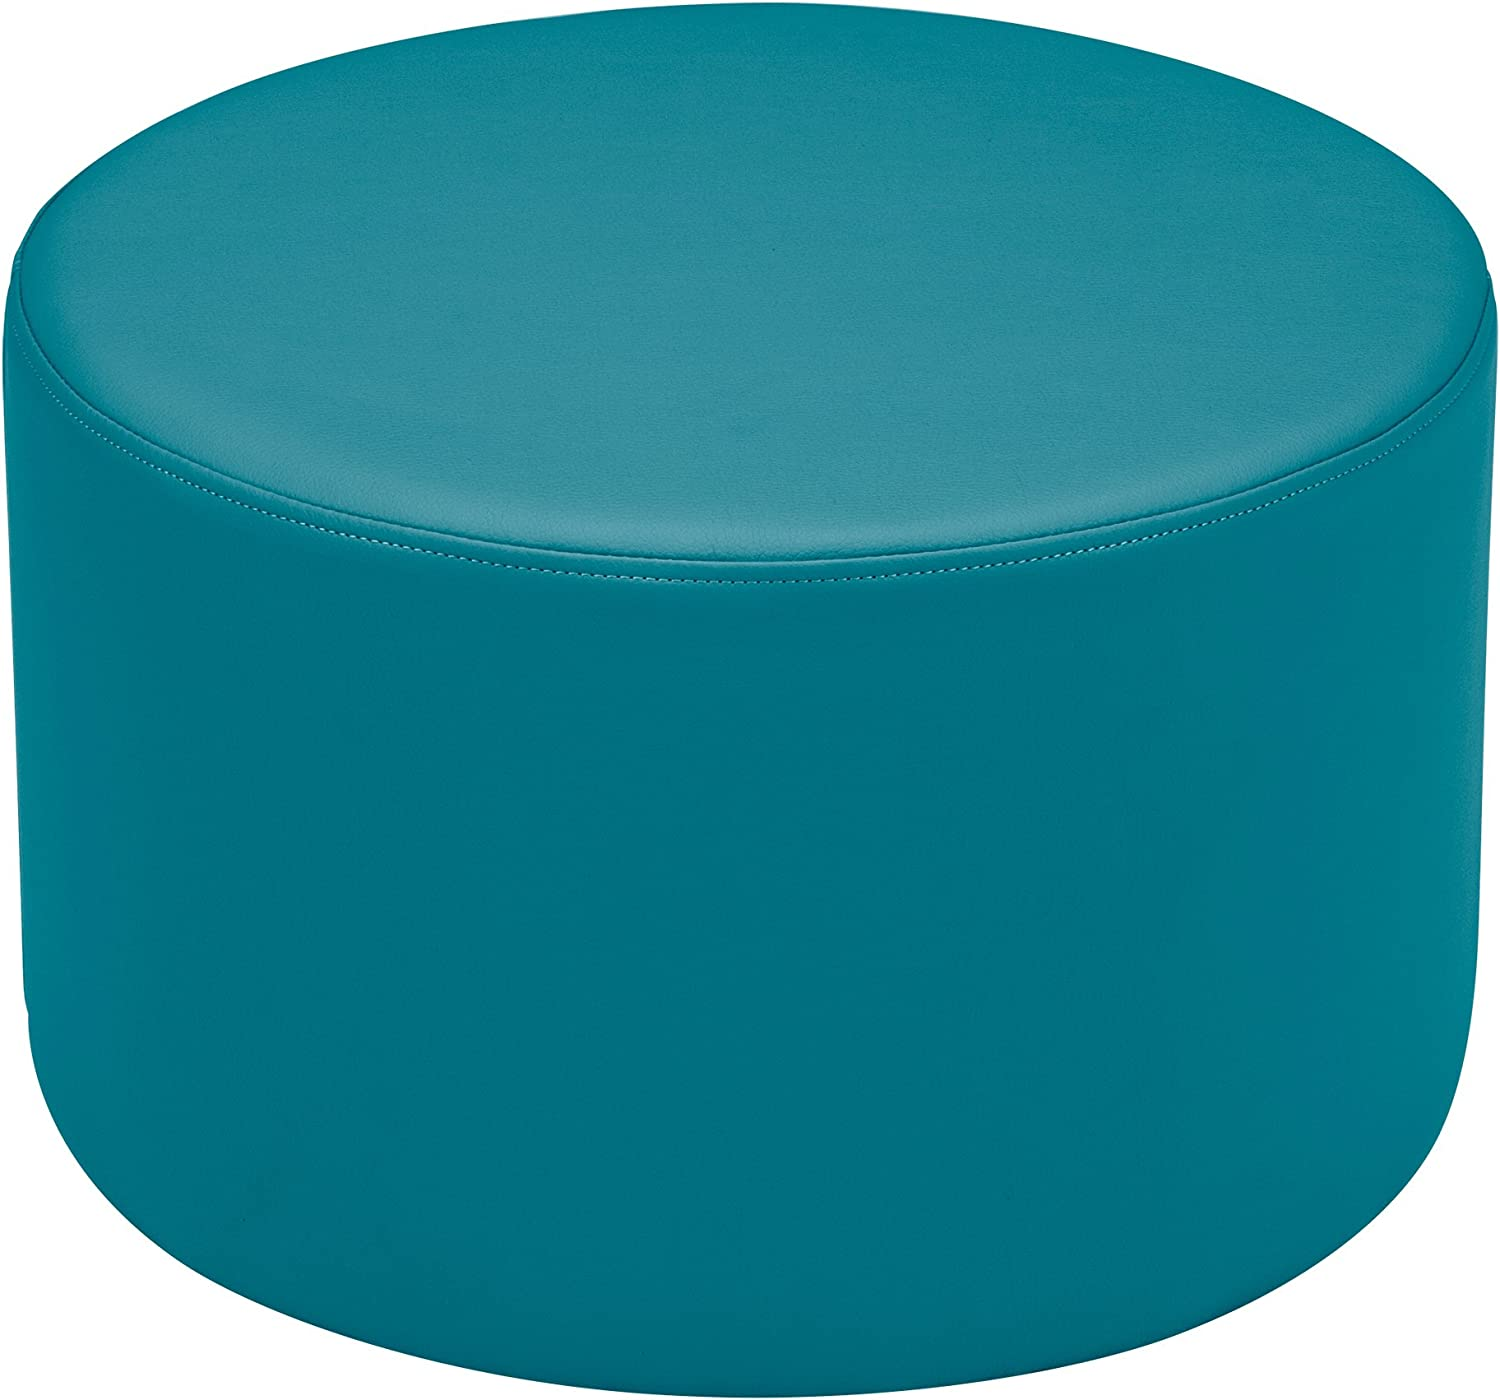 Sprogs Vinyl Soft Seating Round Stool, 12  H, Teal, SPG-1005SF-A